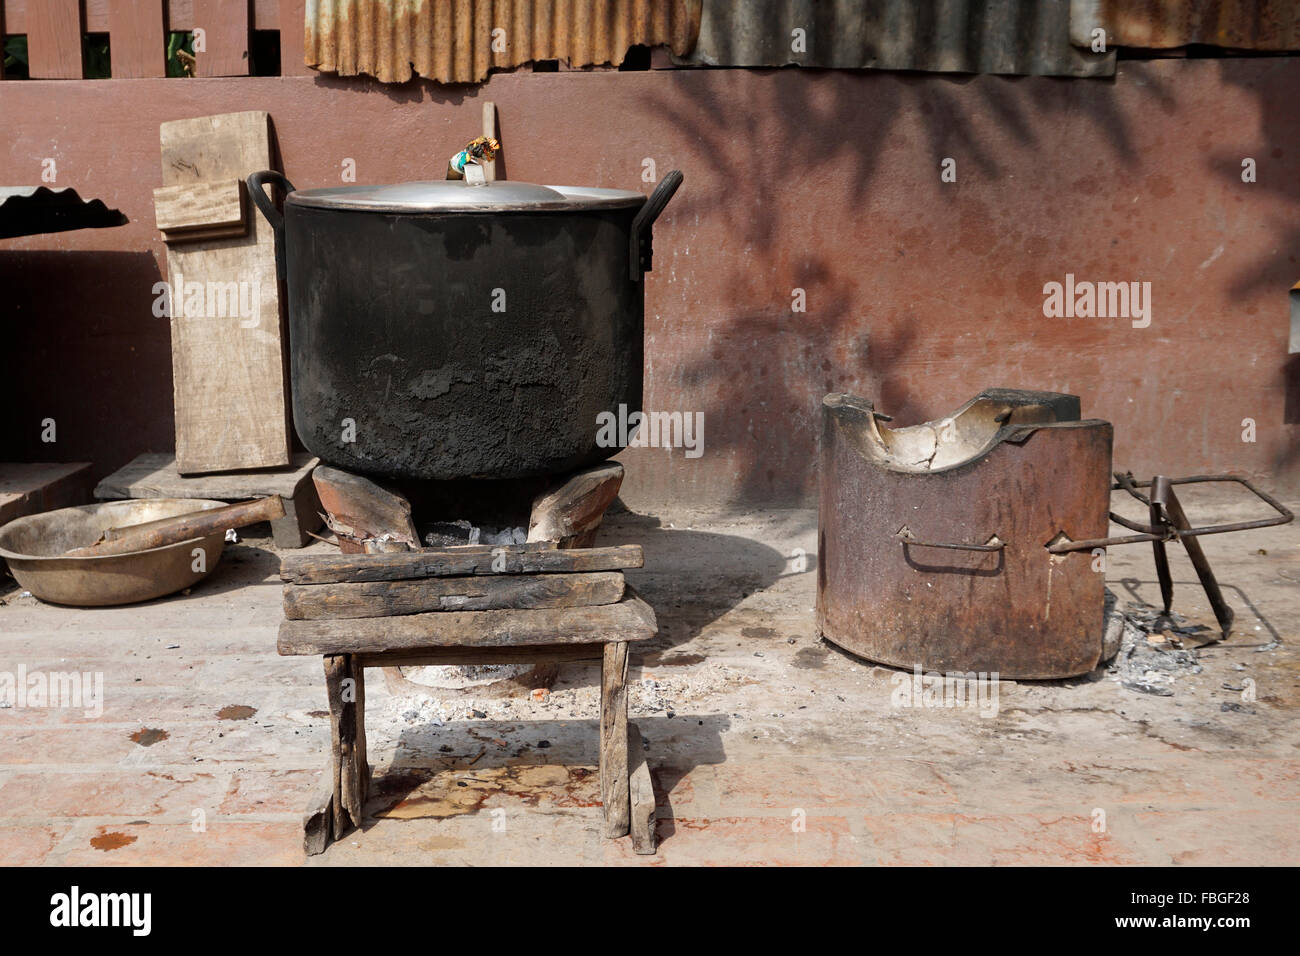 Local stove kitchen outdoor in Laos - Stock Image